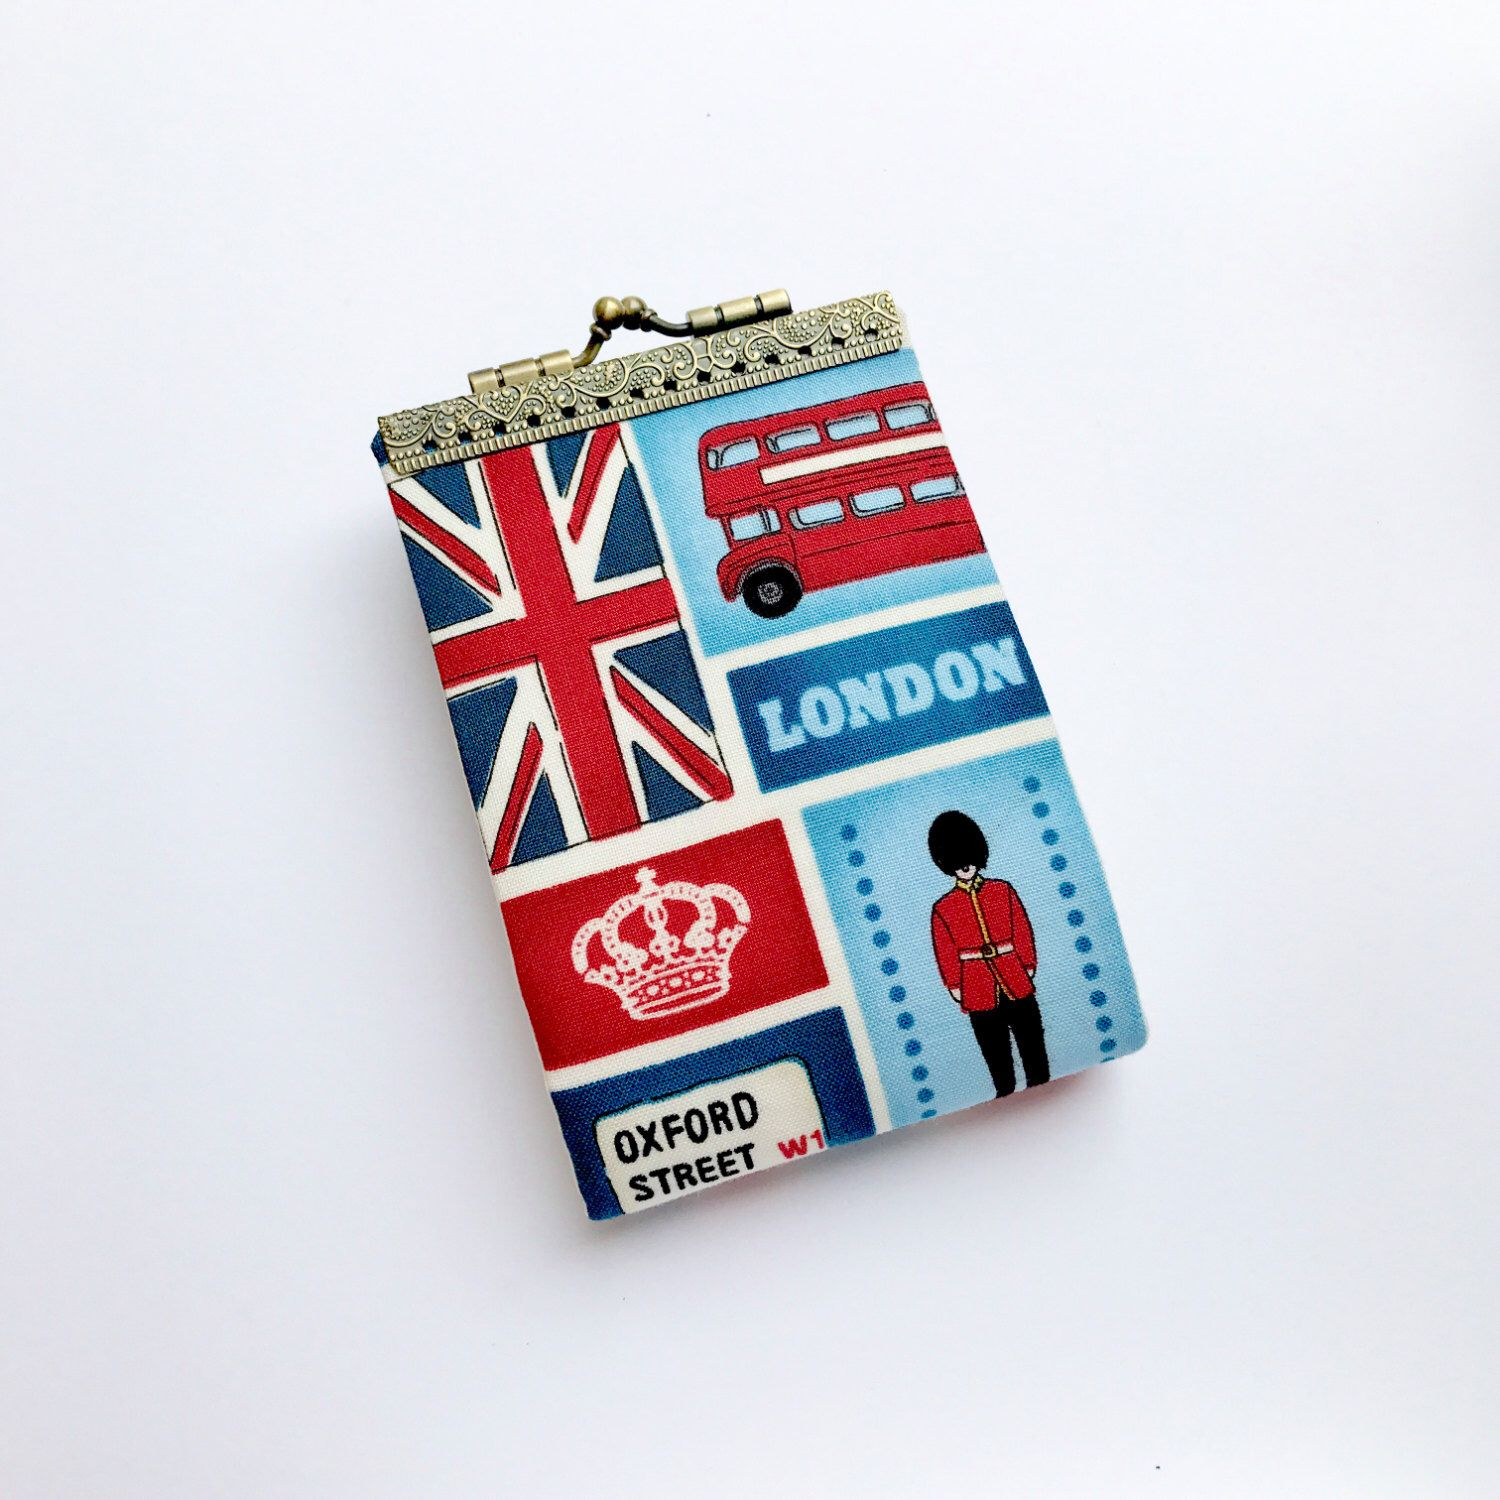 London card holder wallet business card holder credit card holder london card holder wallet business card holder credit card holder card case reheart Choice Image